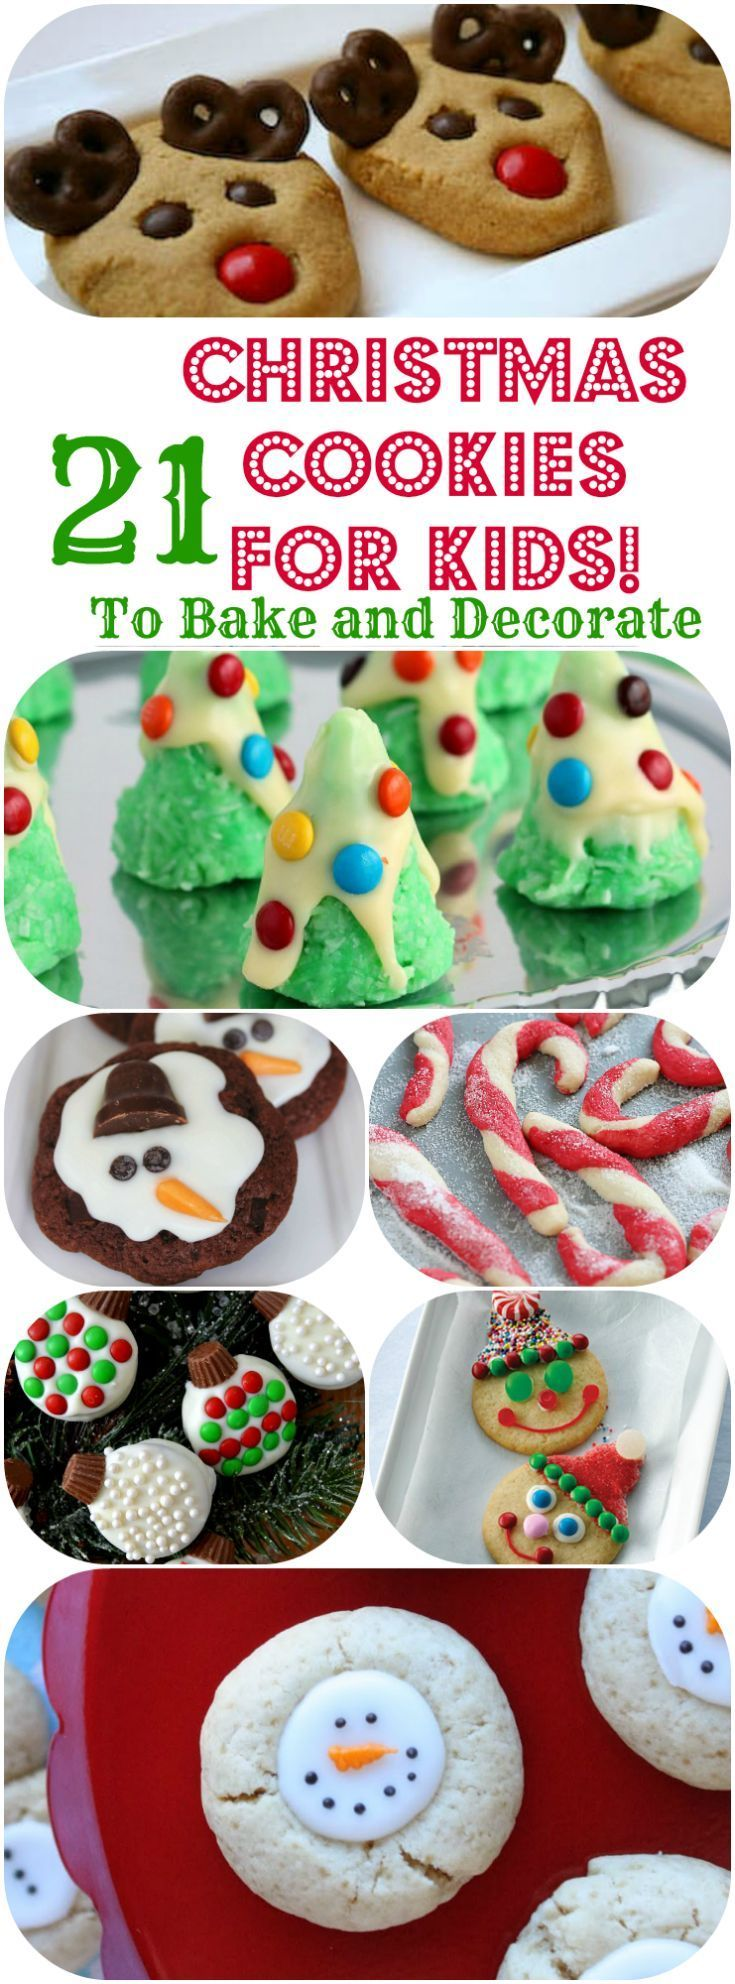 513 Best Letters From Santa Images On Pinterest